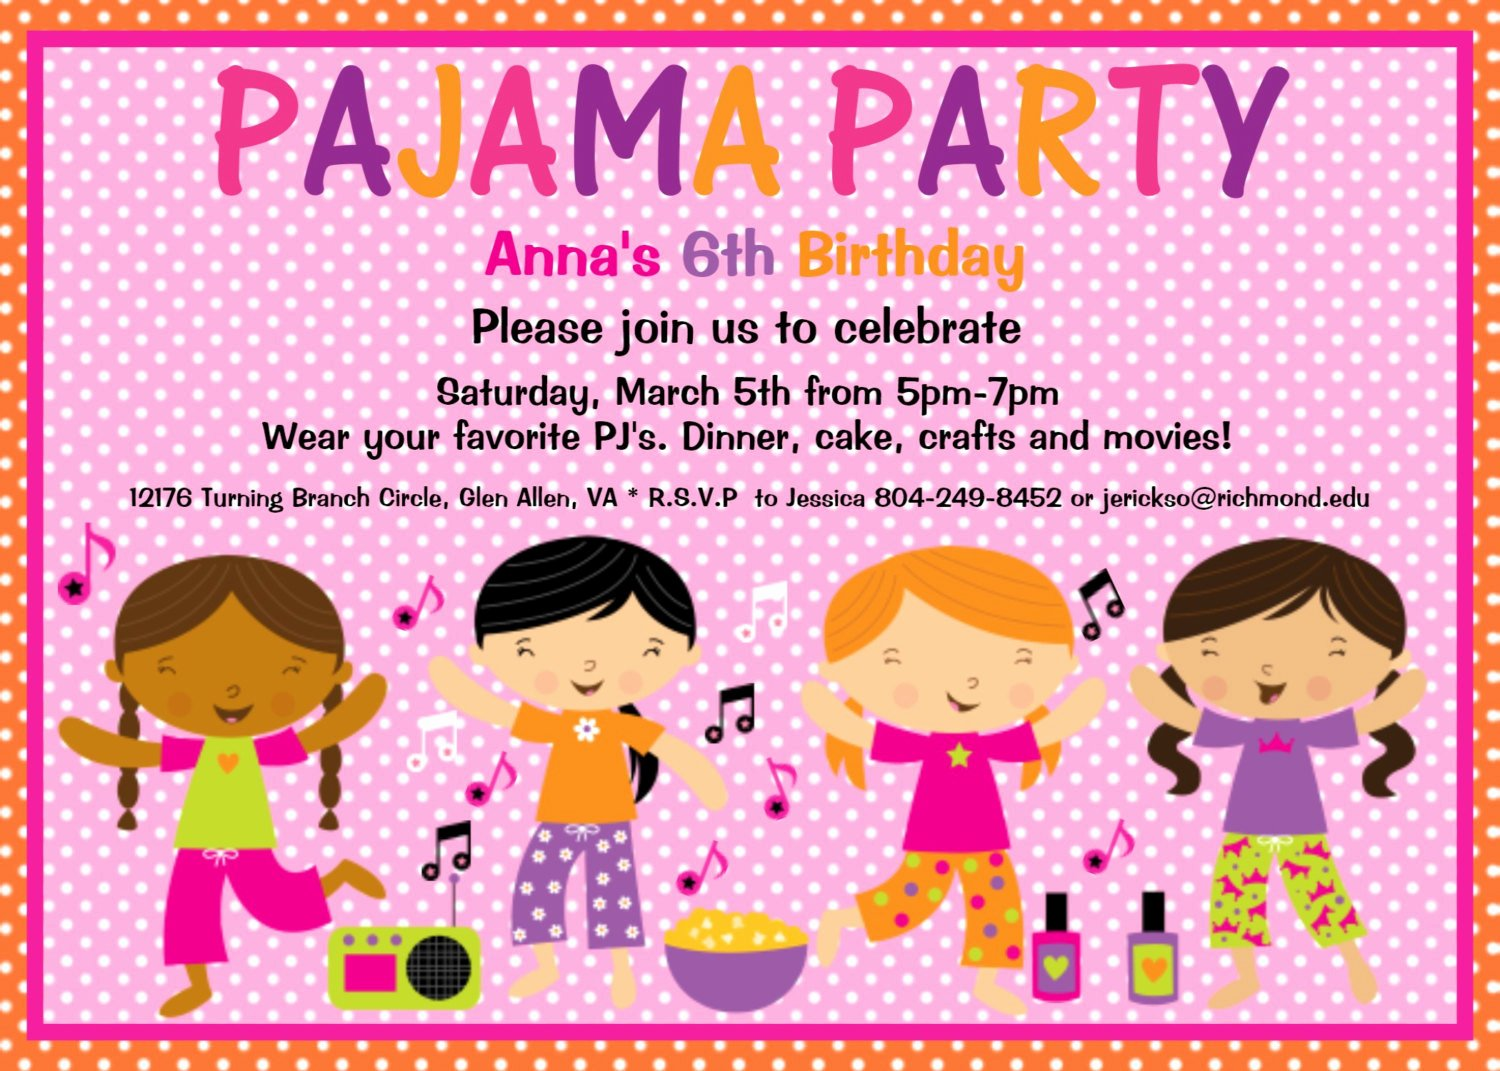 Pajama Party Invitations Free Printable Elegant Pajama Party Birthday Invitation Sleepover Birthday